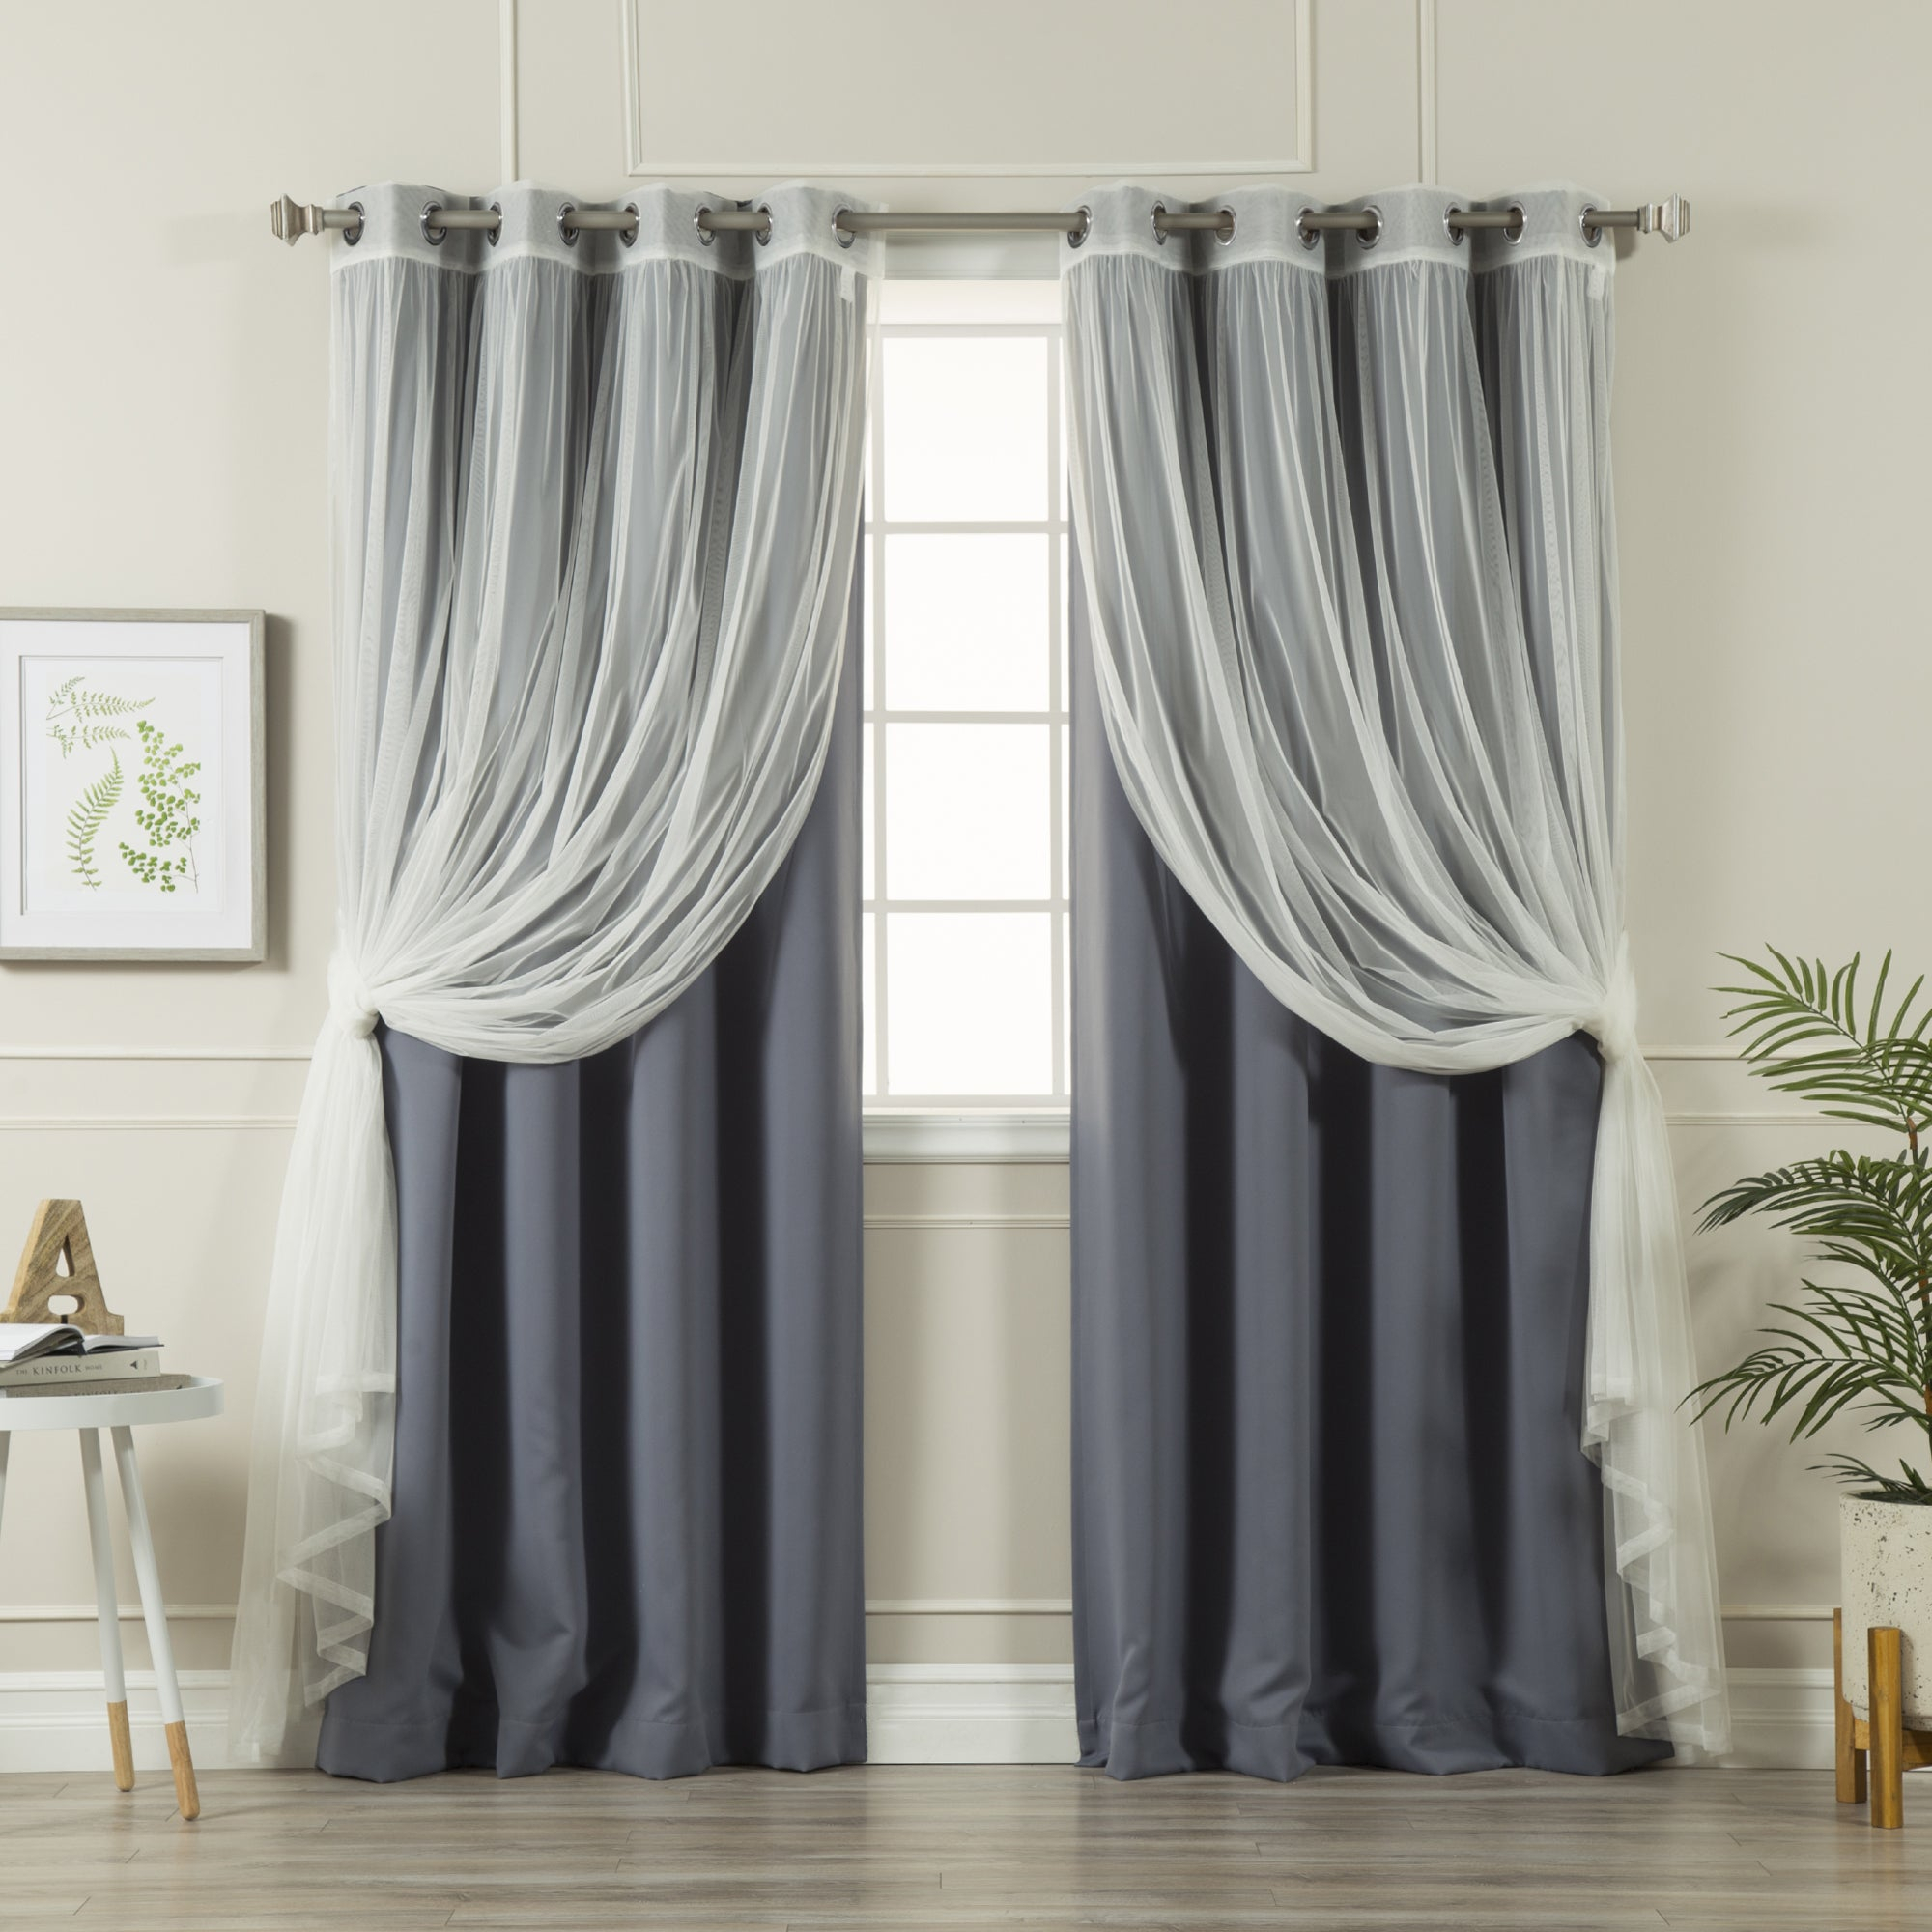 Aurora Home Mix And Match Blackout Tulle Lace Sheer 4 Piece Curtain Panel Set With Regard To Mix And Match Blackout Blackout Curtains Panel Sets (View 6 of 20)